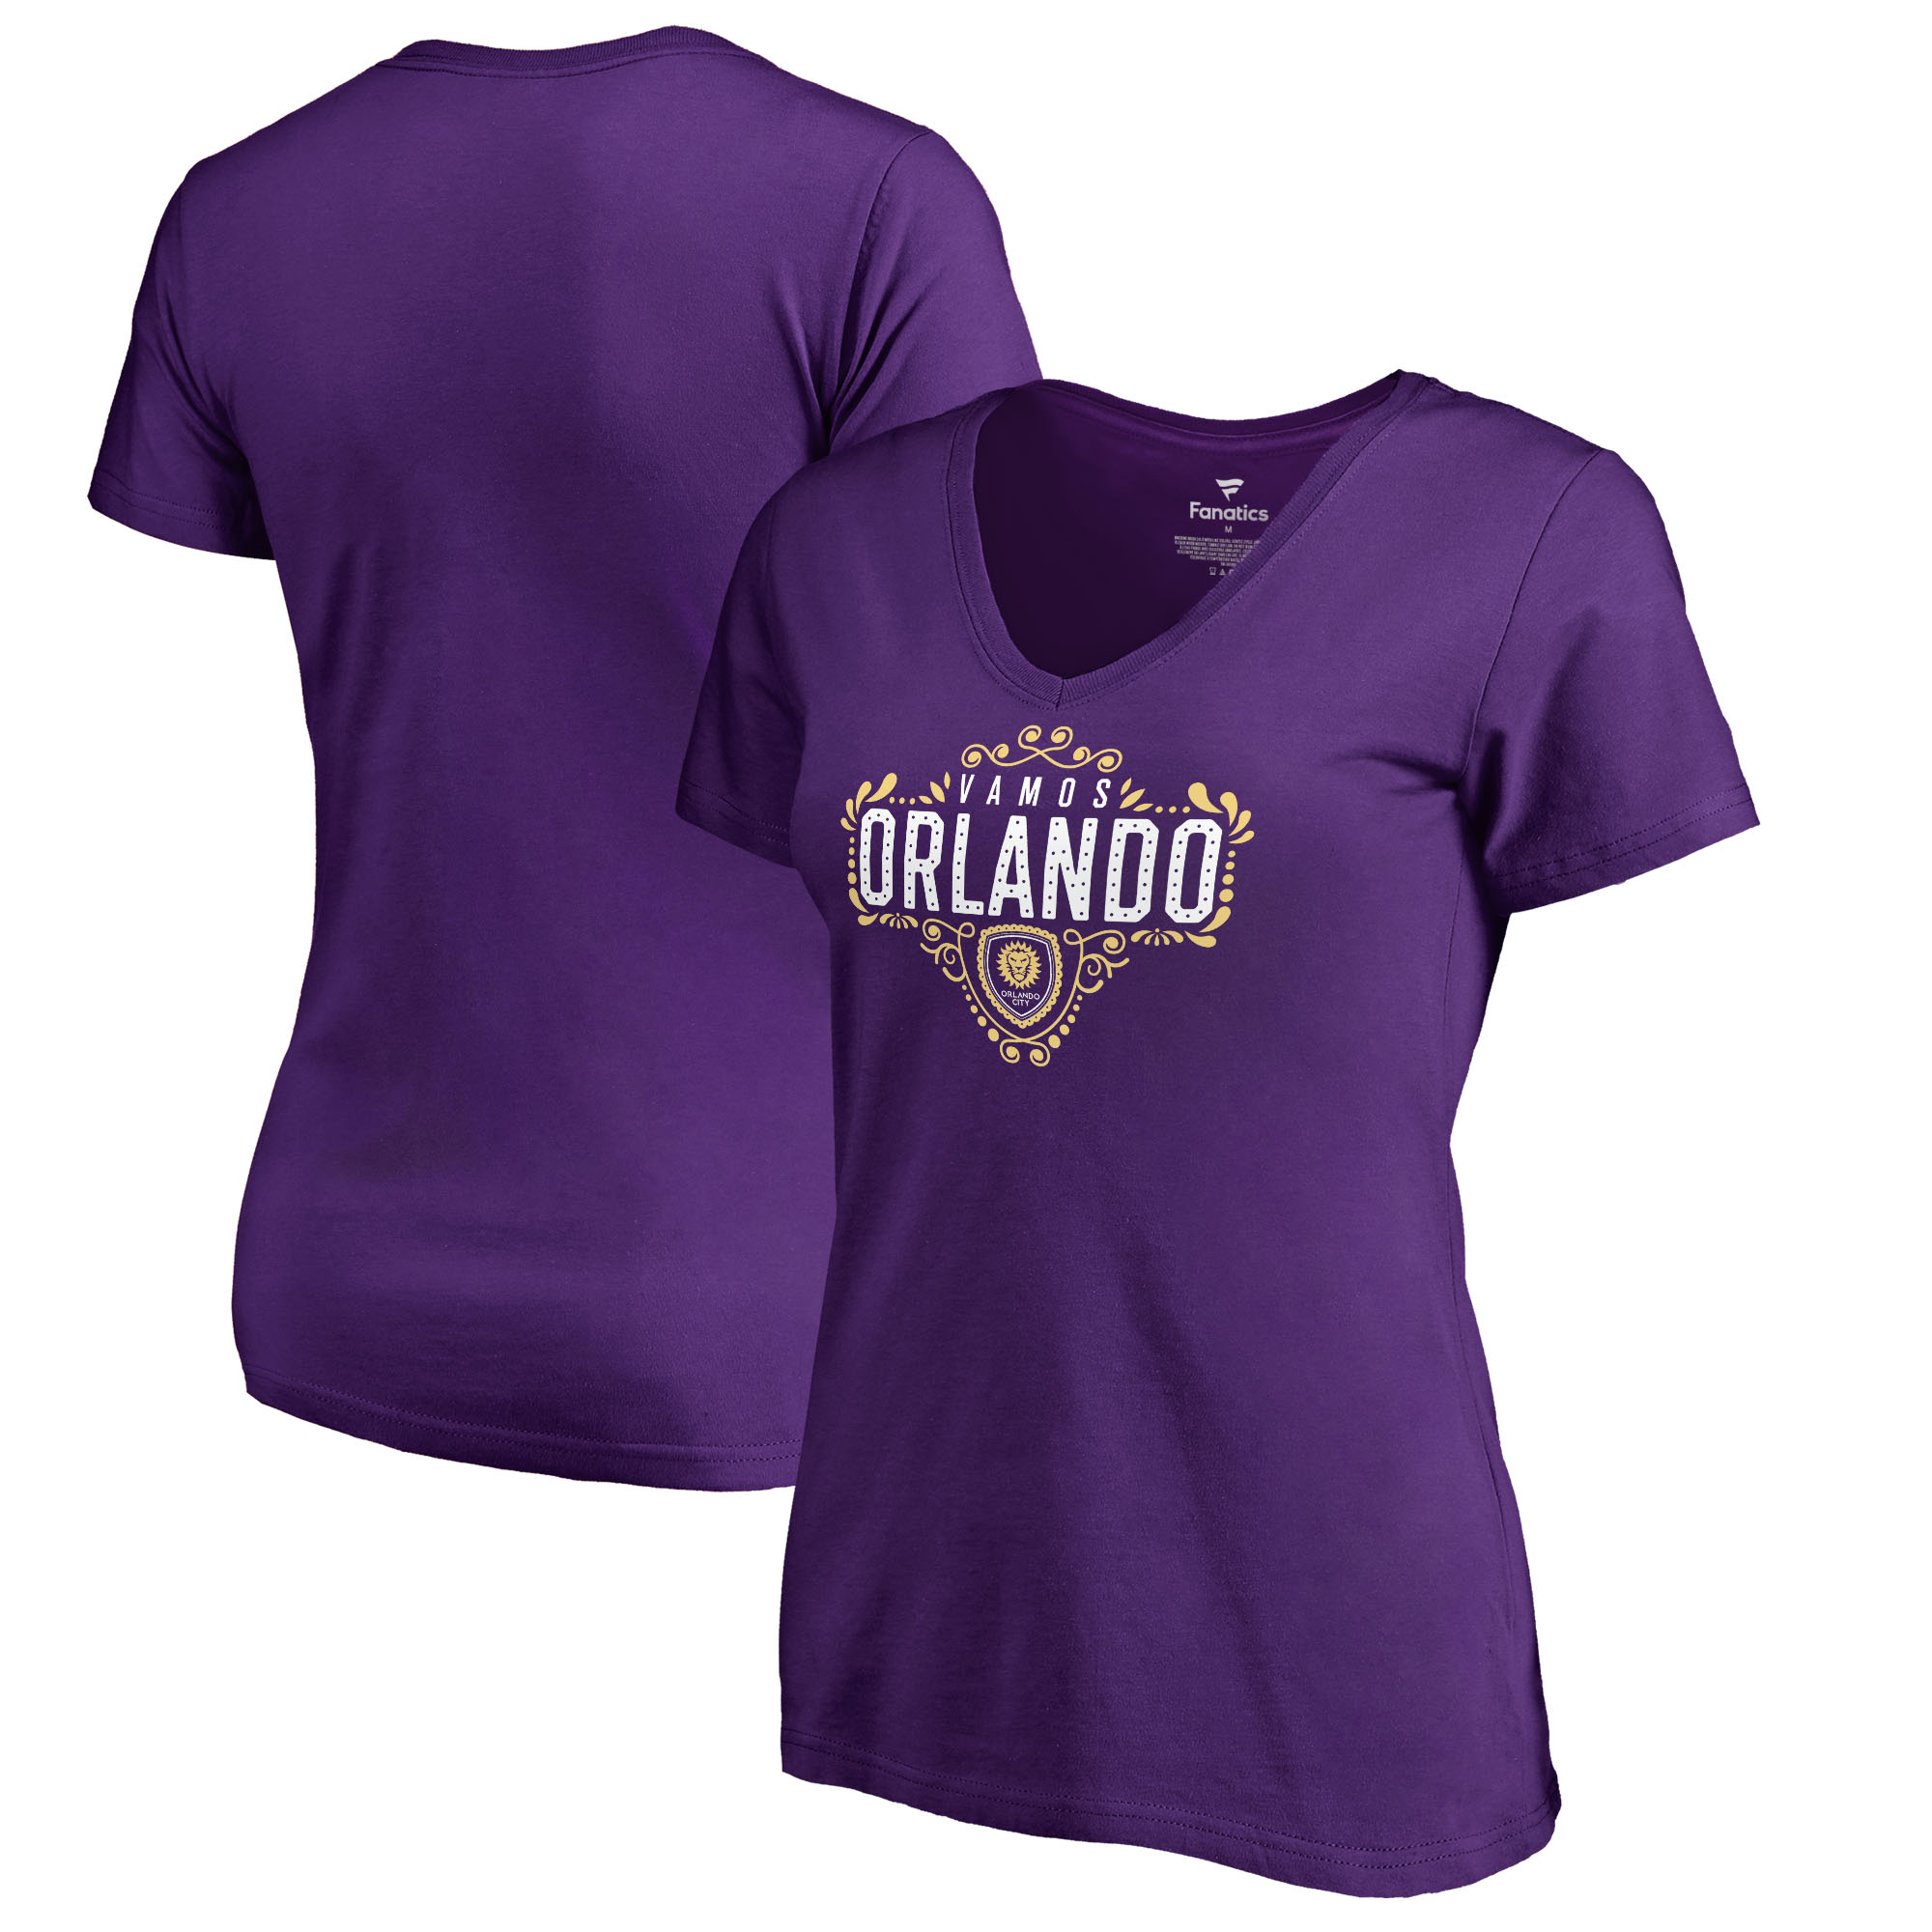 Orlando City SC Fanatics Branded Women's Hometown Collection V-Neck T-Shirt - Purple